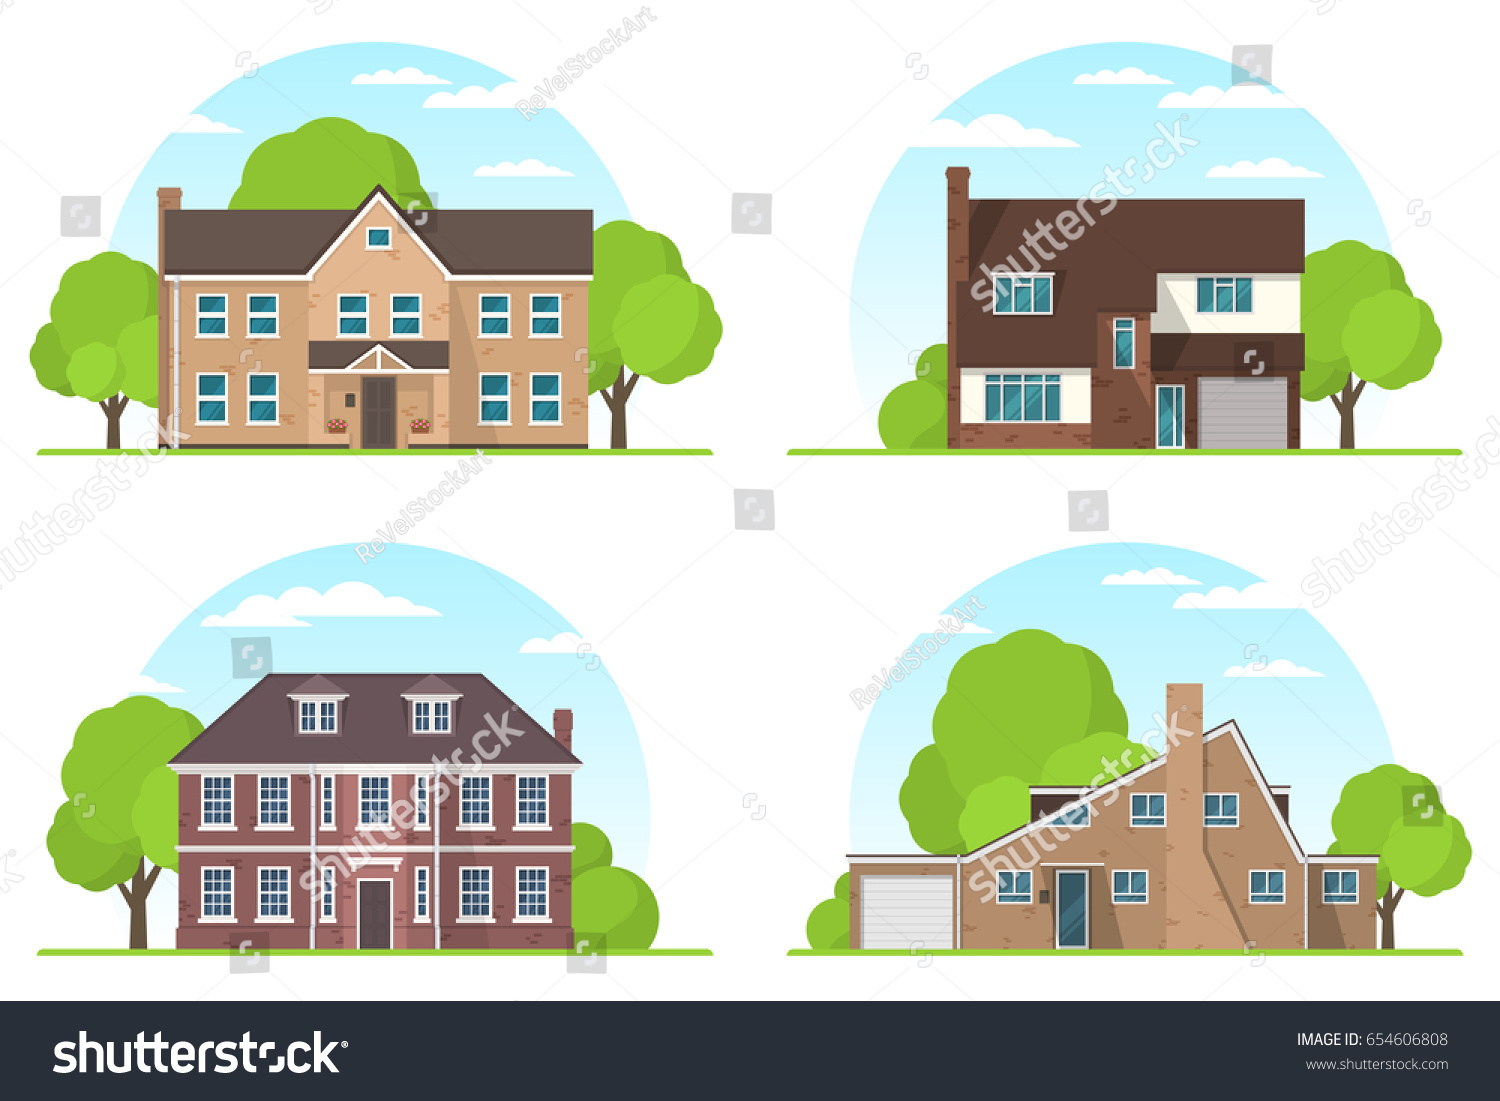 Set Frontview English Style Suburban Private Stock Vector 654606808 ...